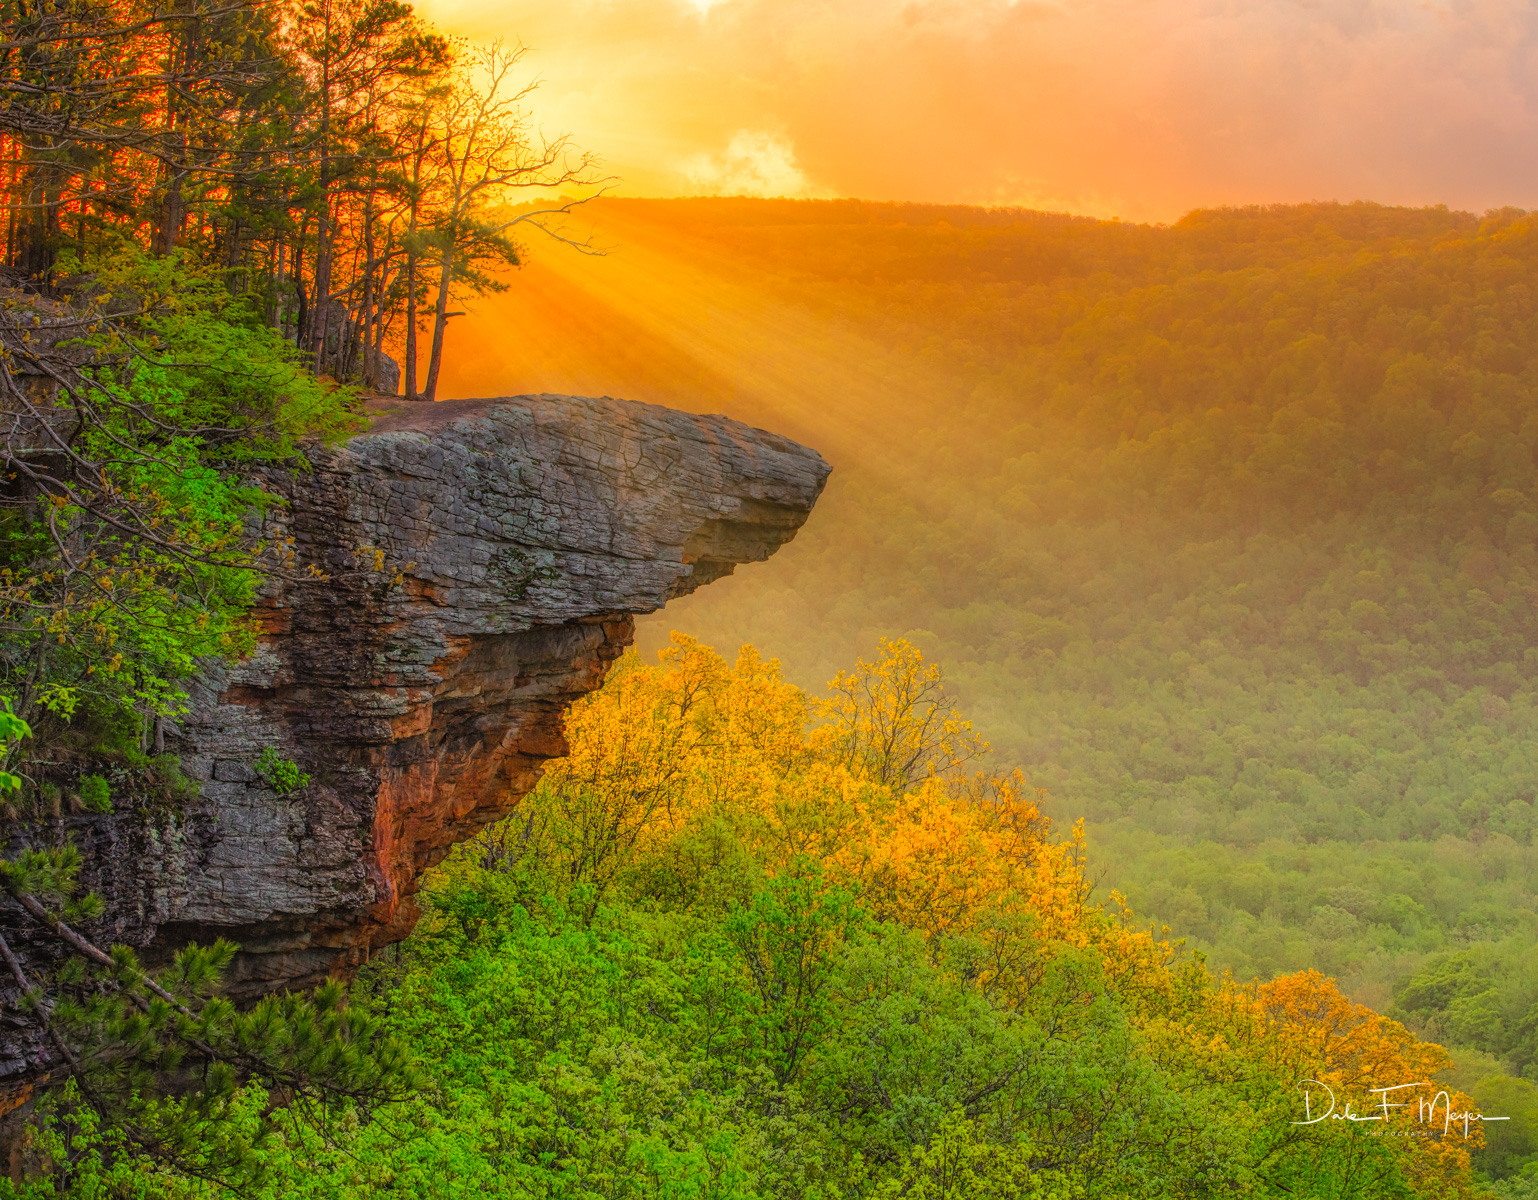 Hawksbill Crag as most in Arkansas call this place is simply stunning. Itwas featured in the opening scenes of the Disney...